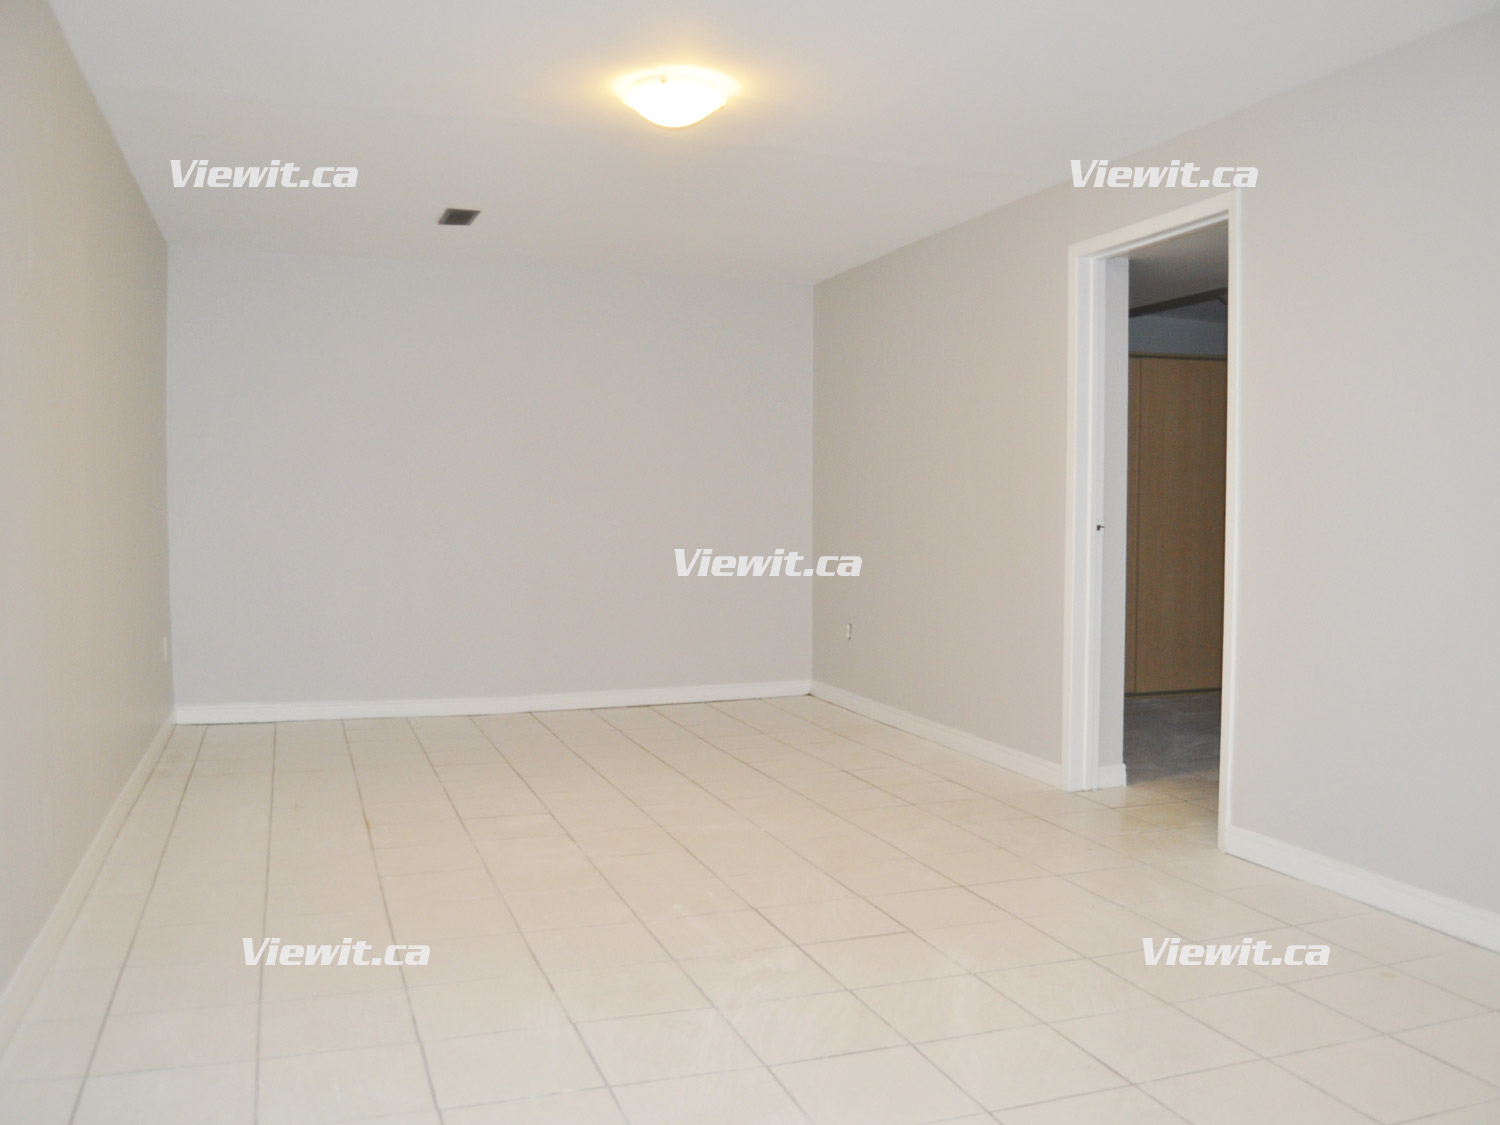 HURONTARIO-CENTRAL PARKWAY, Mississauga , ON : 1 Bedroom ...